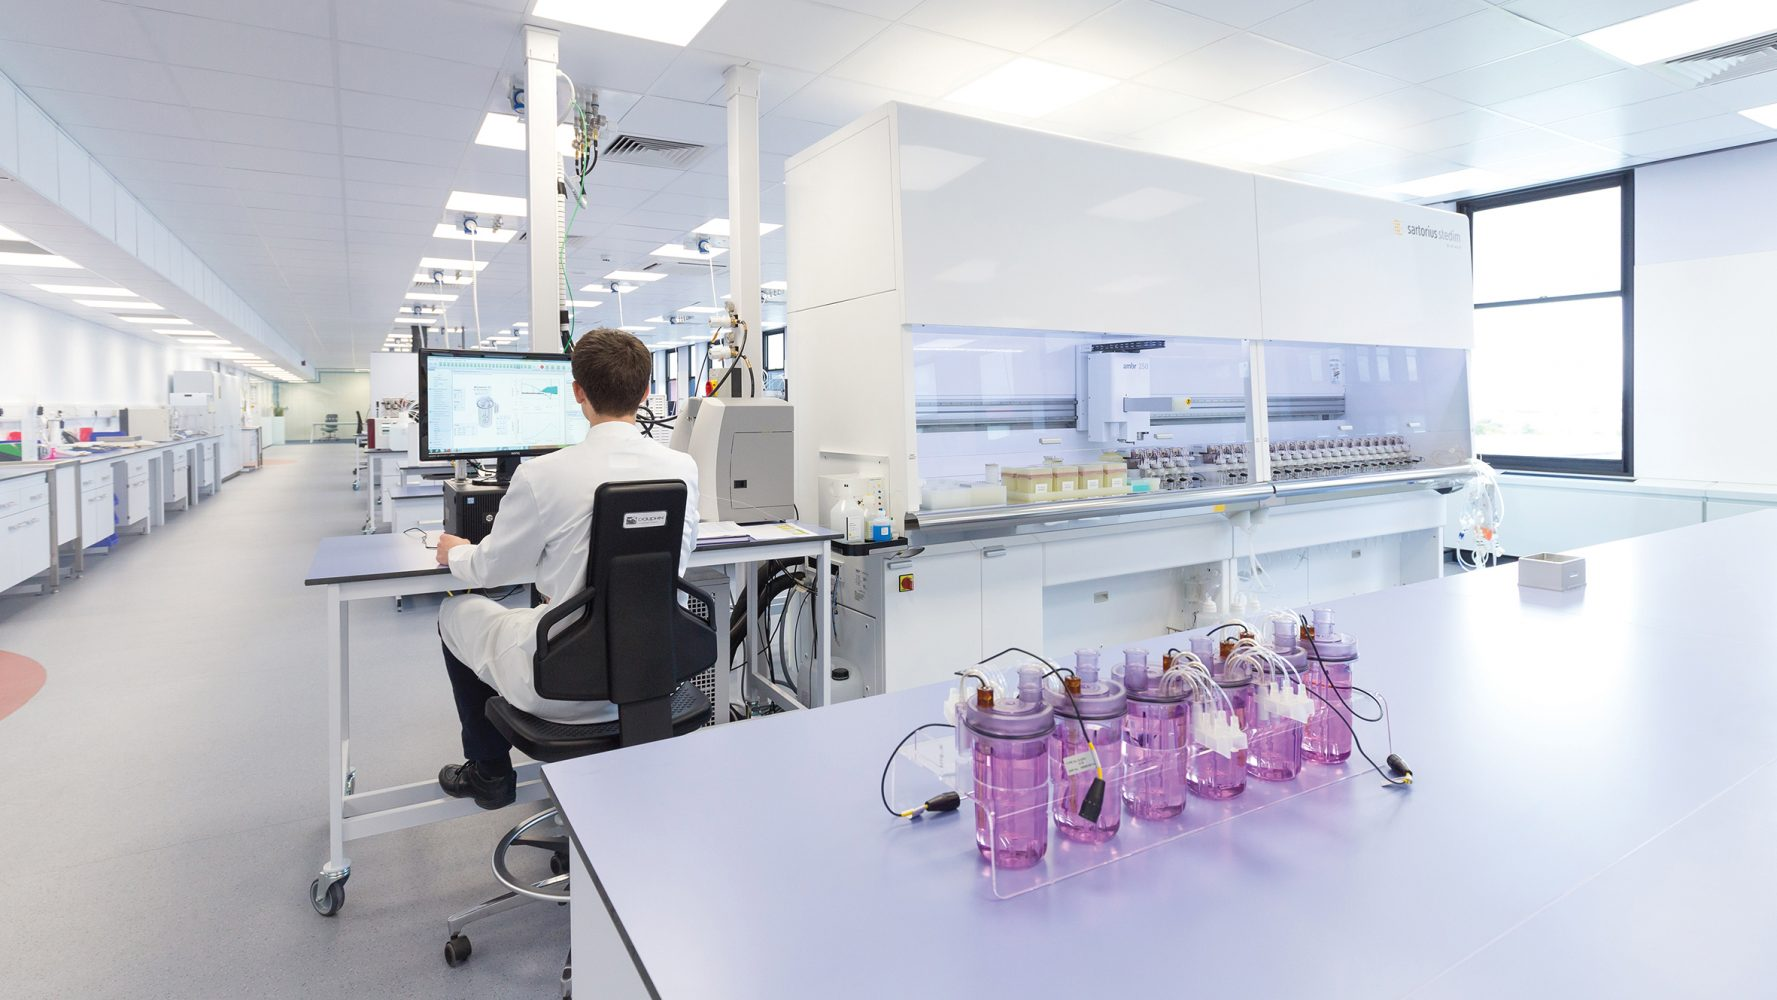 FUJIFILM Diosynth Biotechnologies Case Study - Knowledge Factory